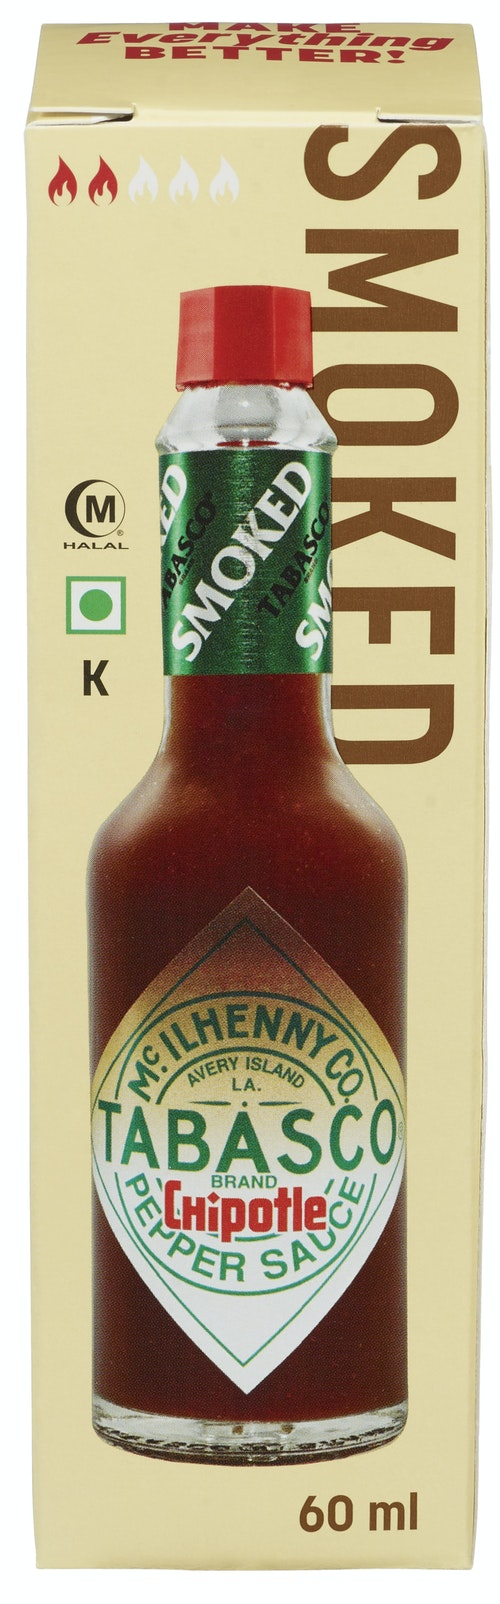 Tabasco Tabasco Chipotle Sauce 60 ml